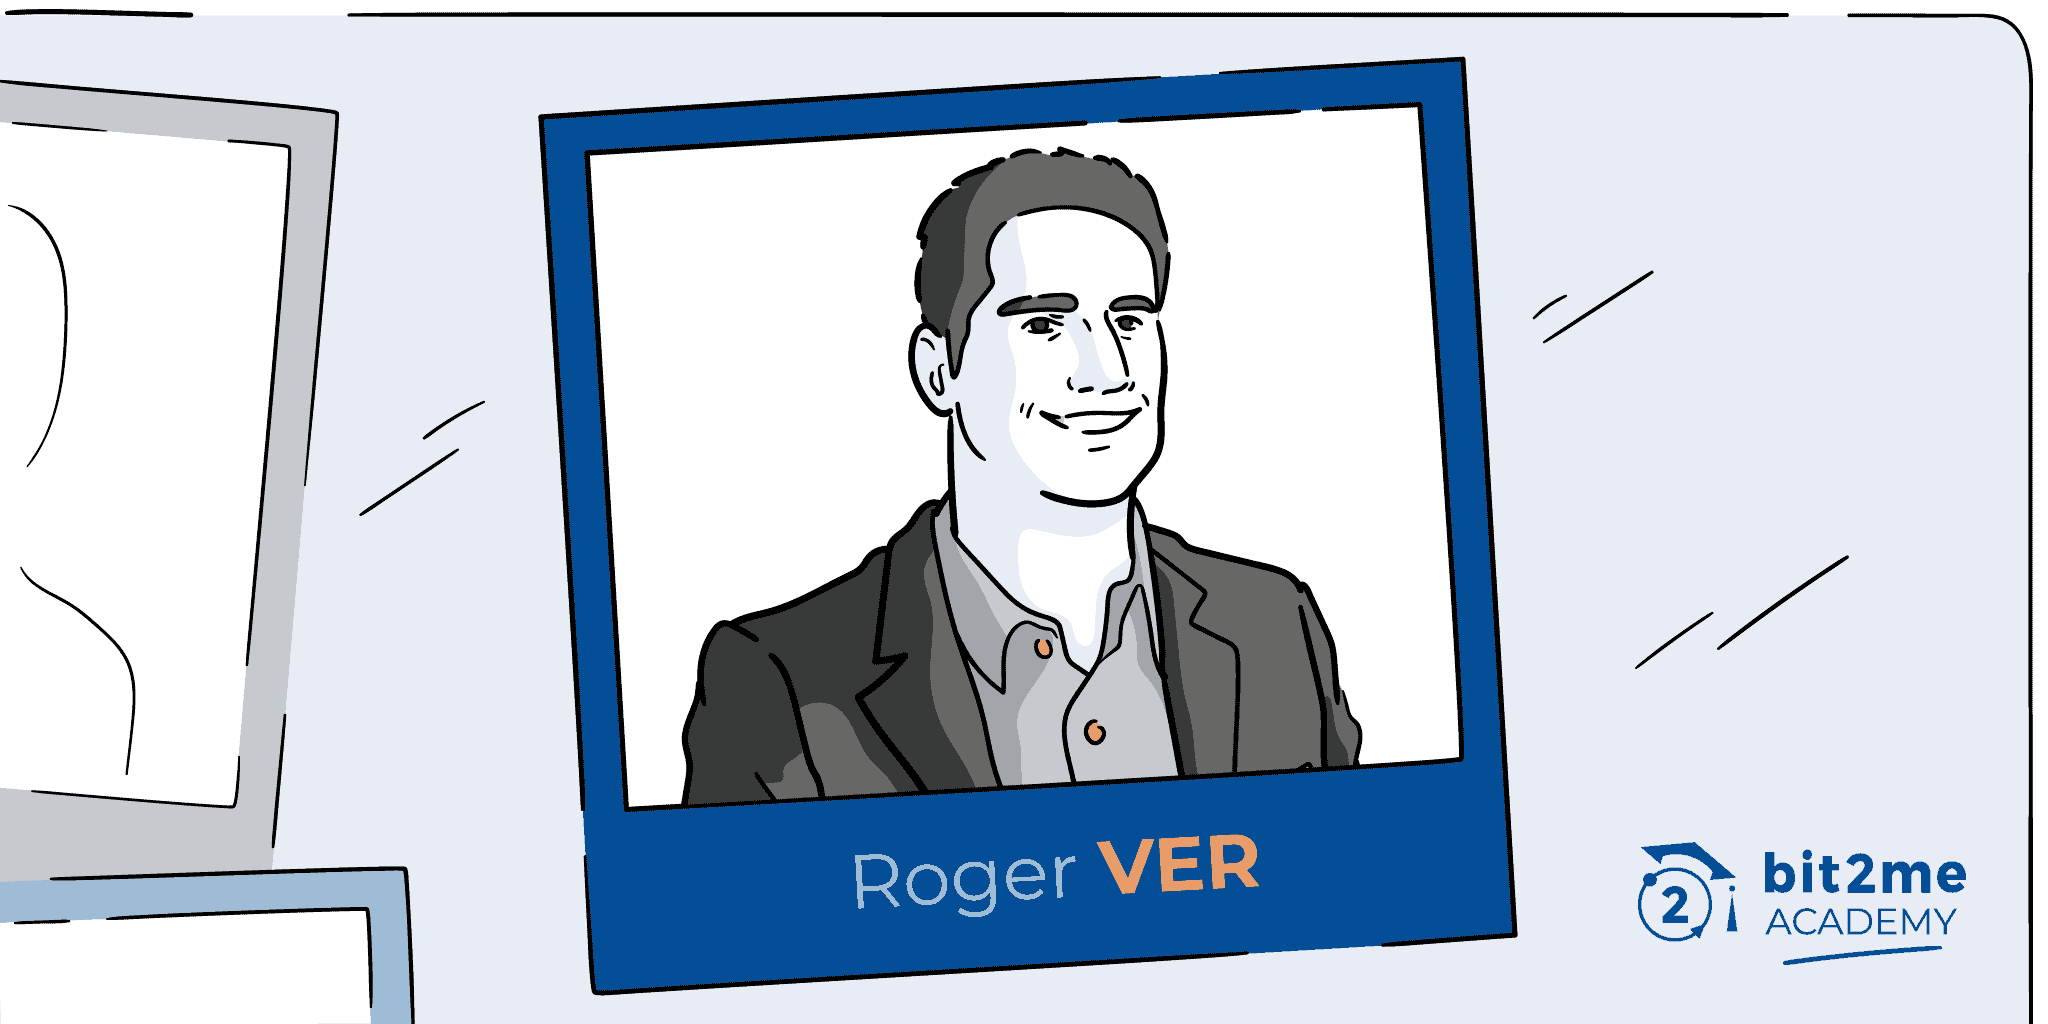 who is roger see, roger see bitcoin, roger see crypto, roger see cryptocurrencies